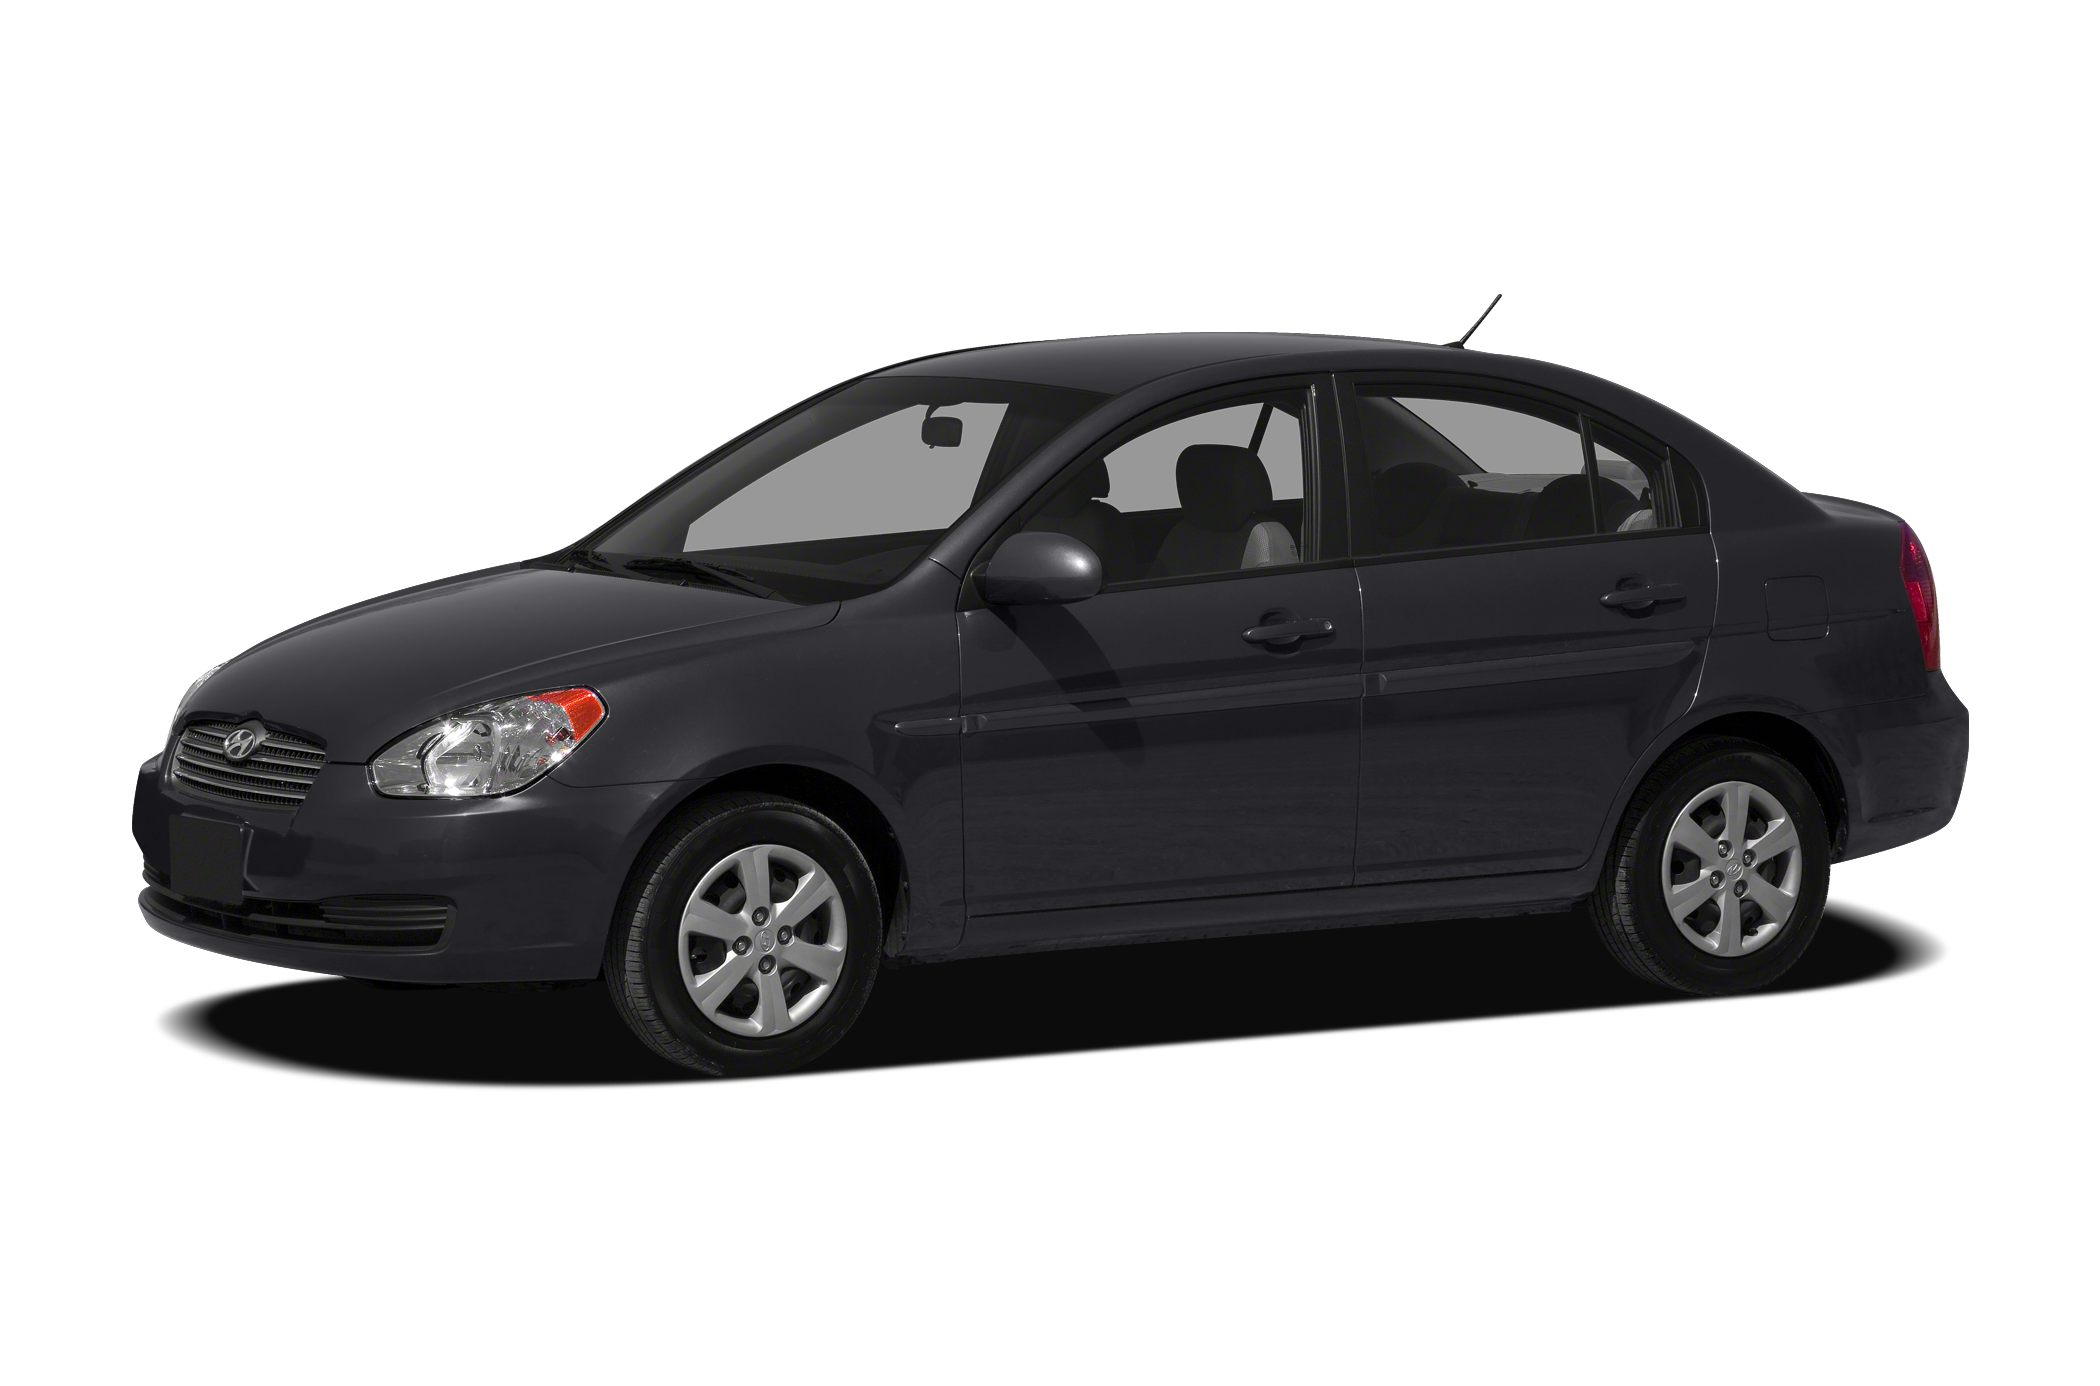 2010 Hyundai Accent GLS Sedan for sale in Jackson for $8,975 with 61,618 miles